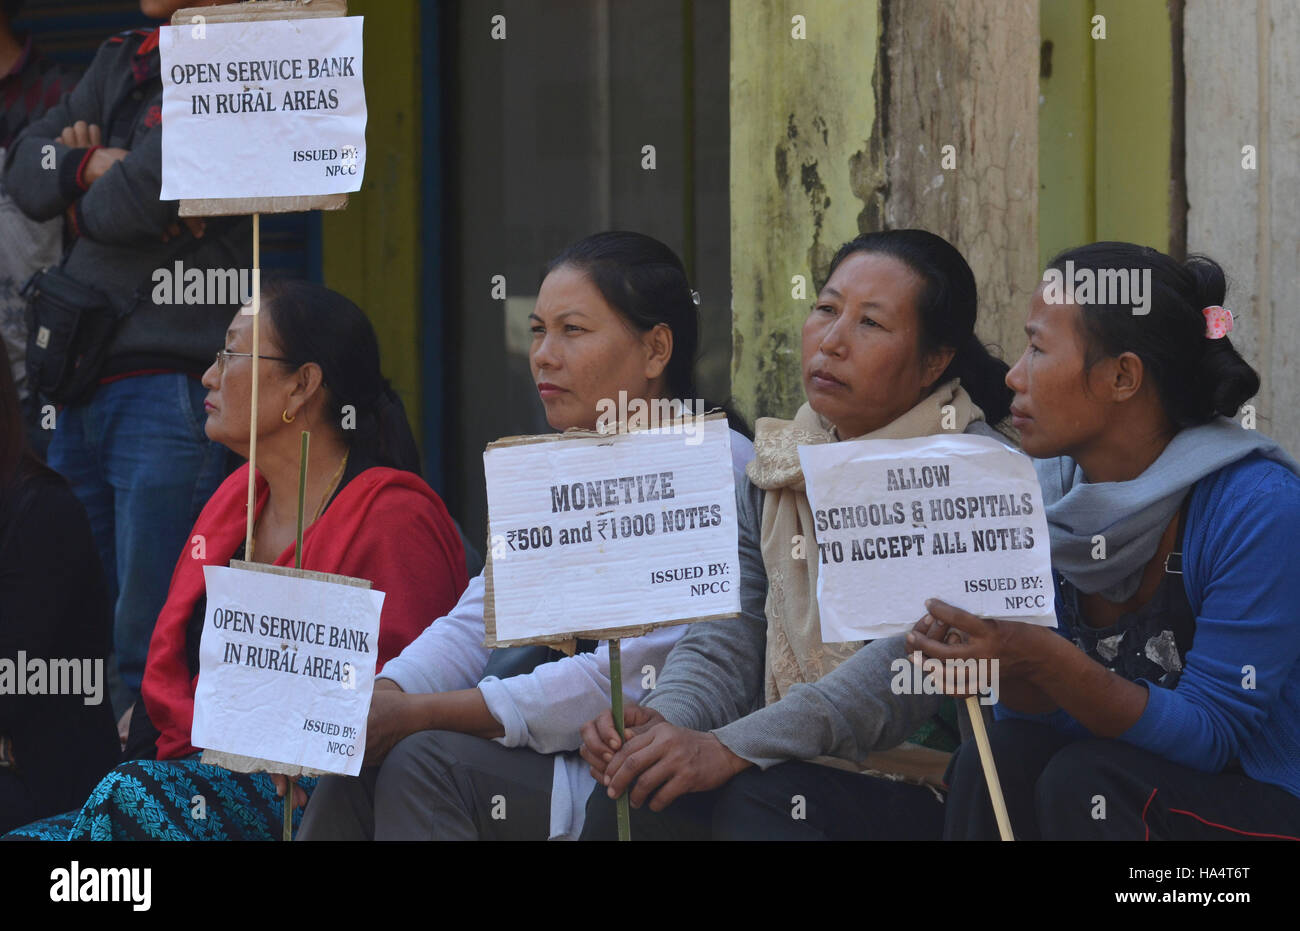 Dimapur, India. 28th Nov, 2016. Supporters of Indian National Congress party holds placard at protest rally against - Stock Image